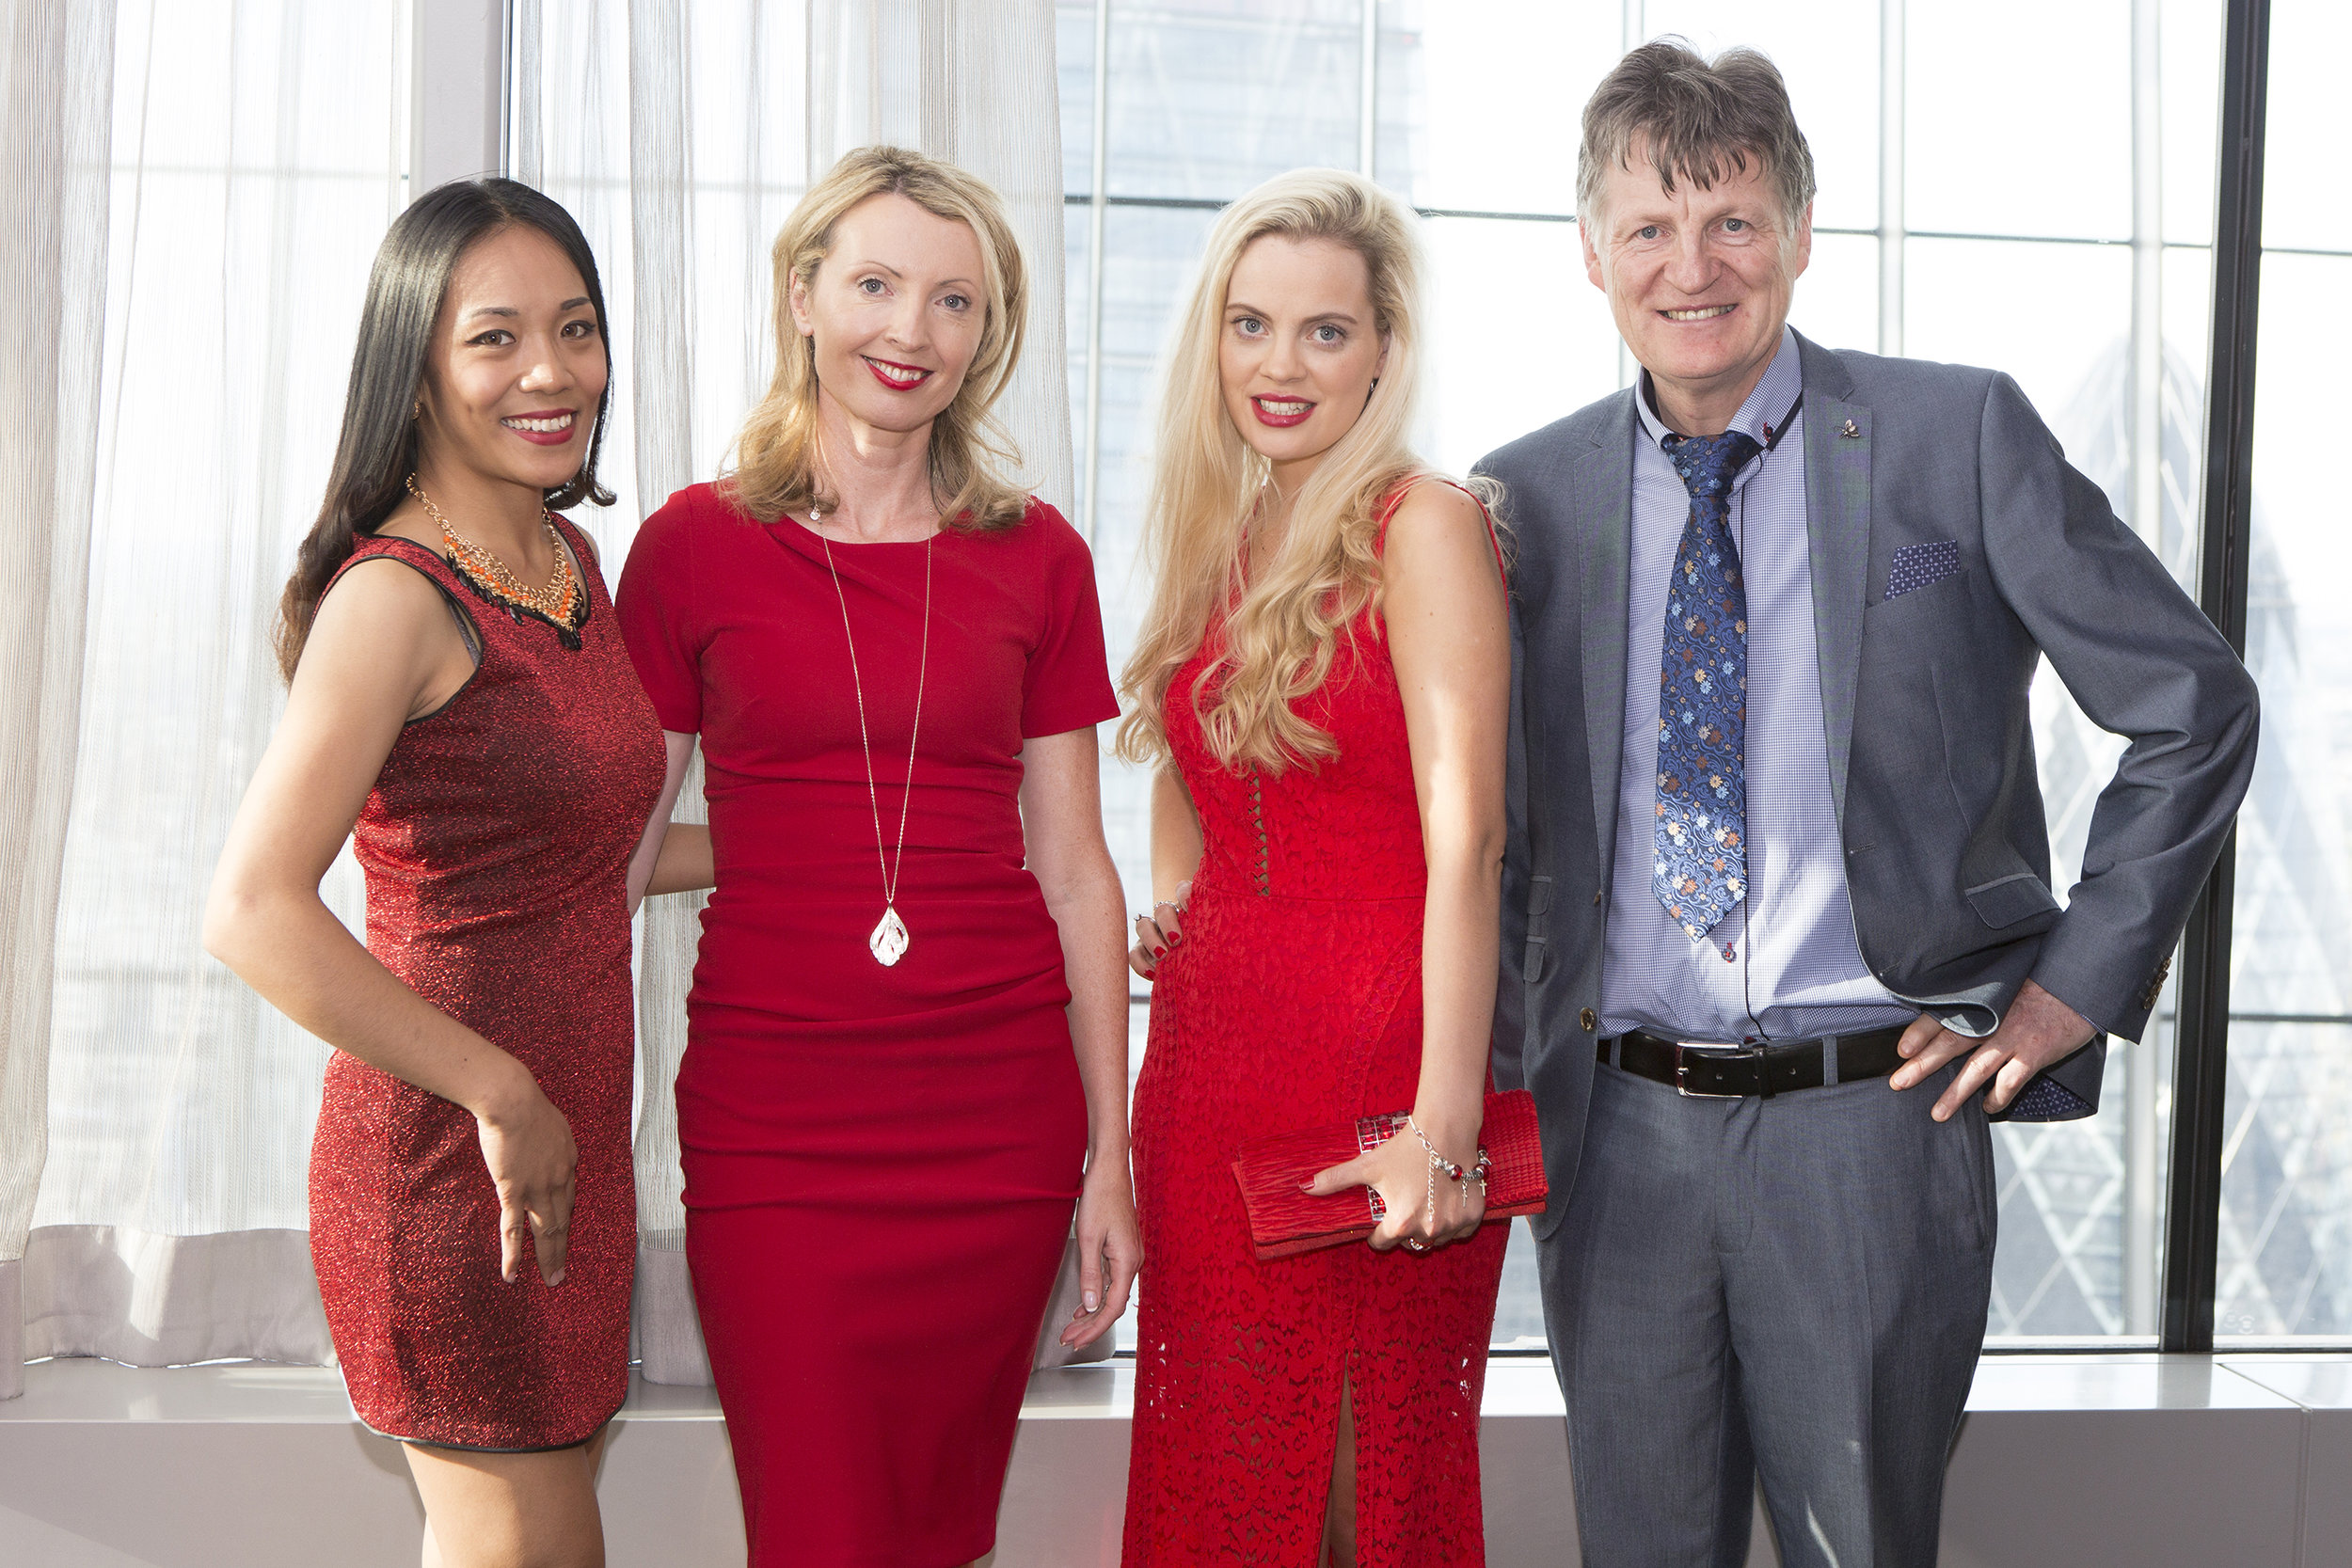 UK Launch of AMDR - We managed the launch in association with Emerge London of the world's first virtual online dressing room at a private media function in Sky Garden, London.